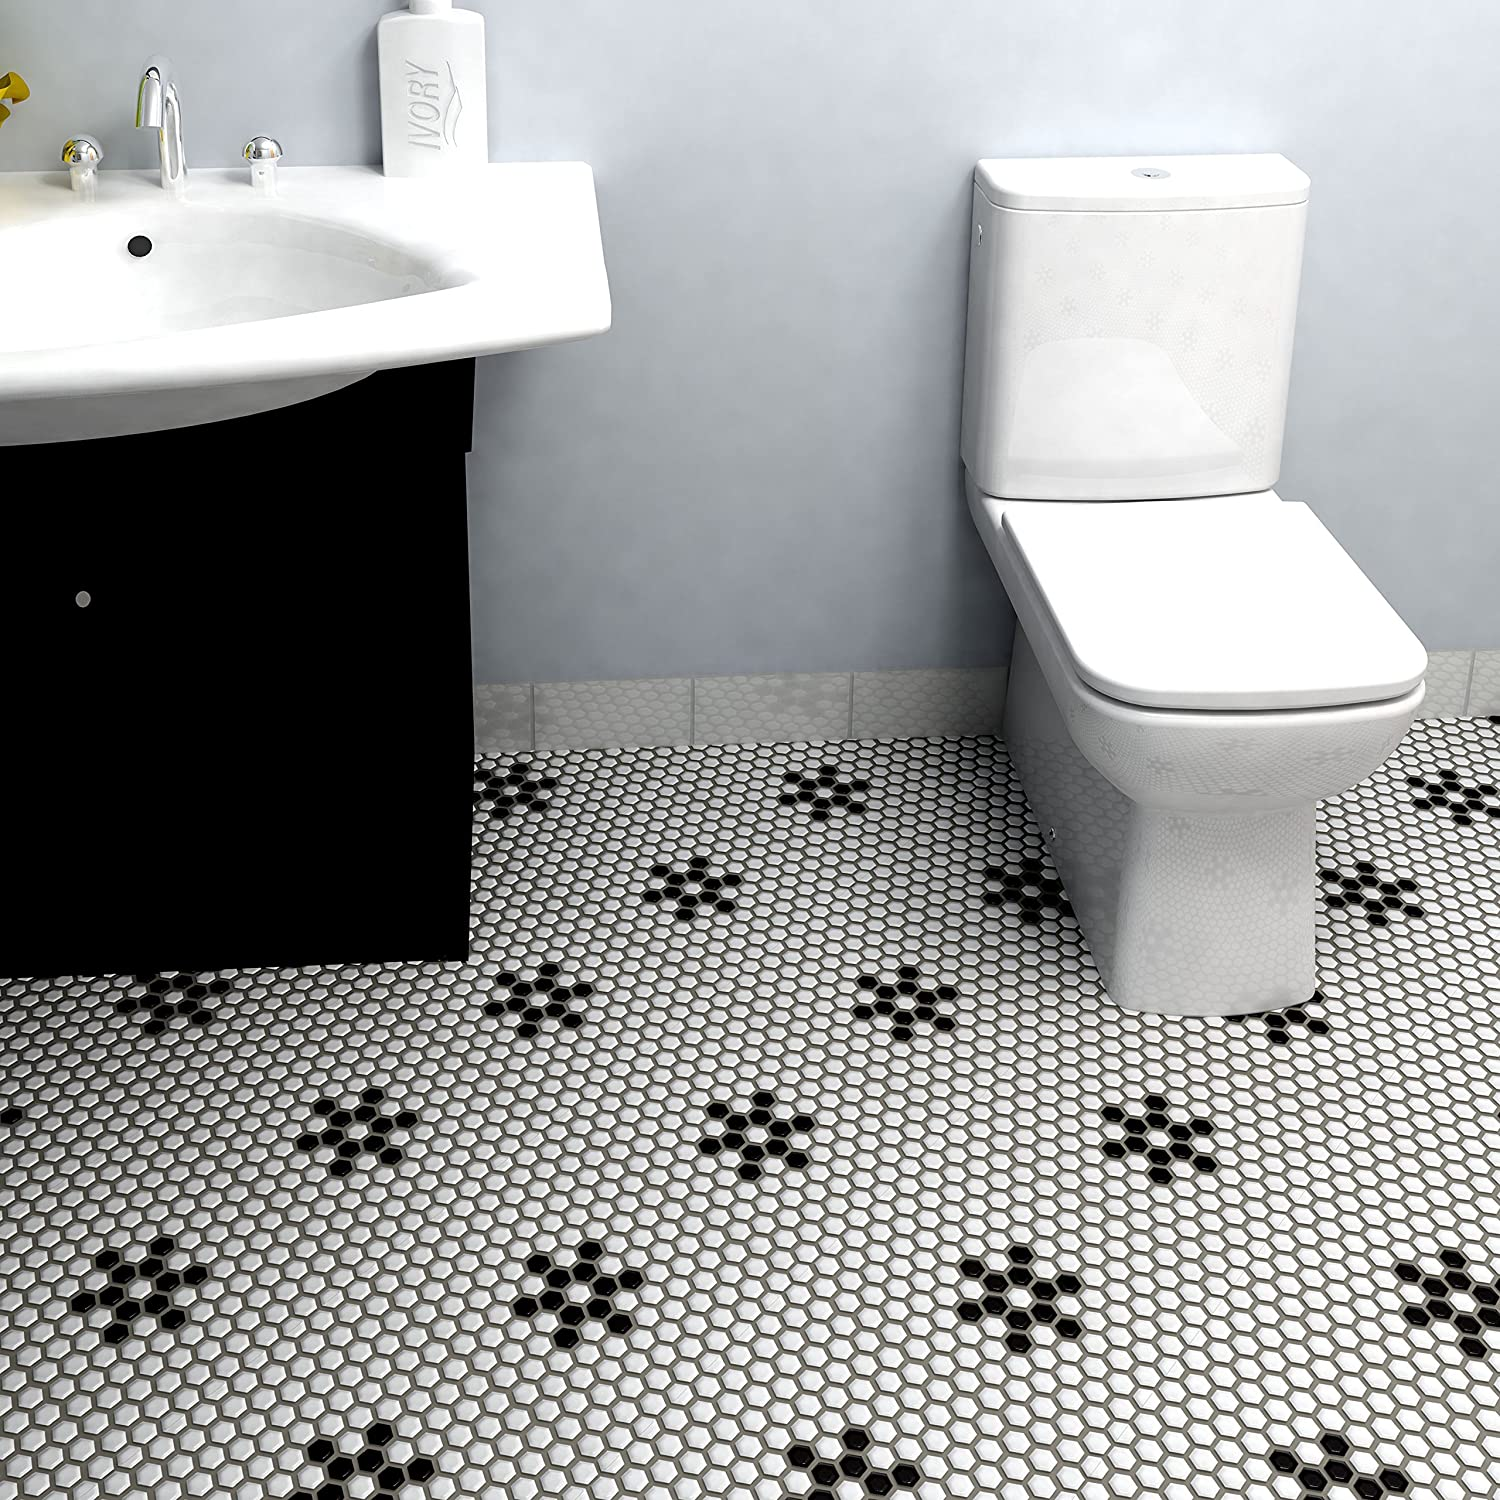 Somertile Fxlm1hms Retro Hex Snowflake Porcelain Floor And Wall Tile